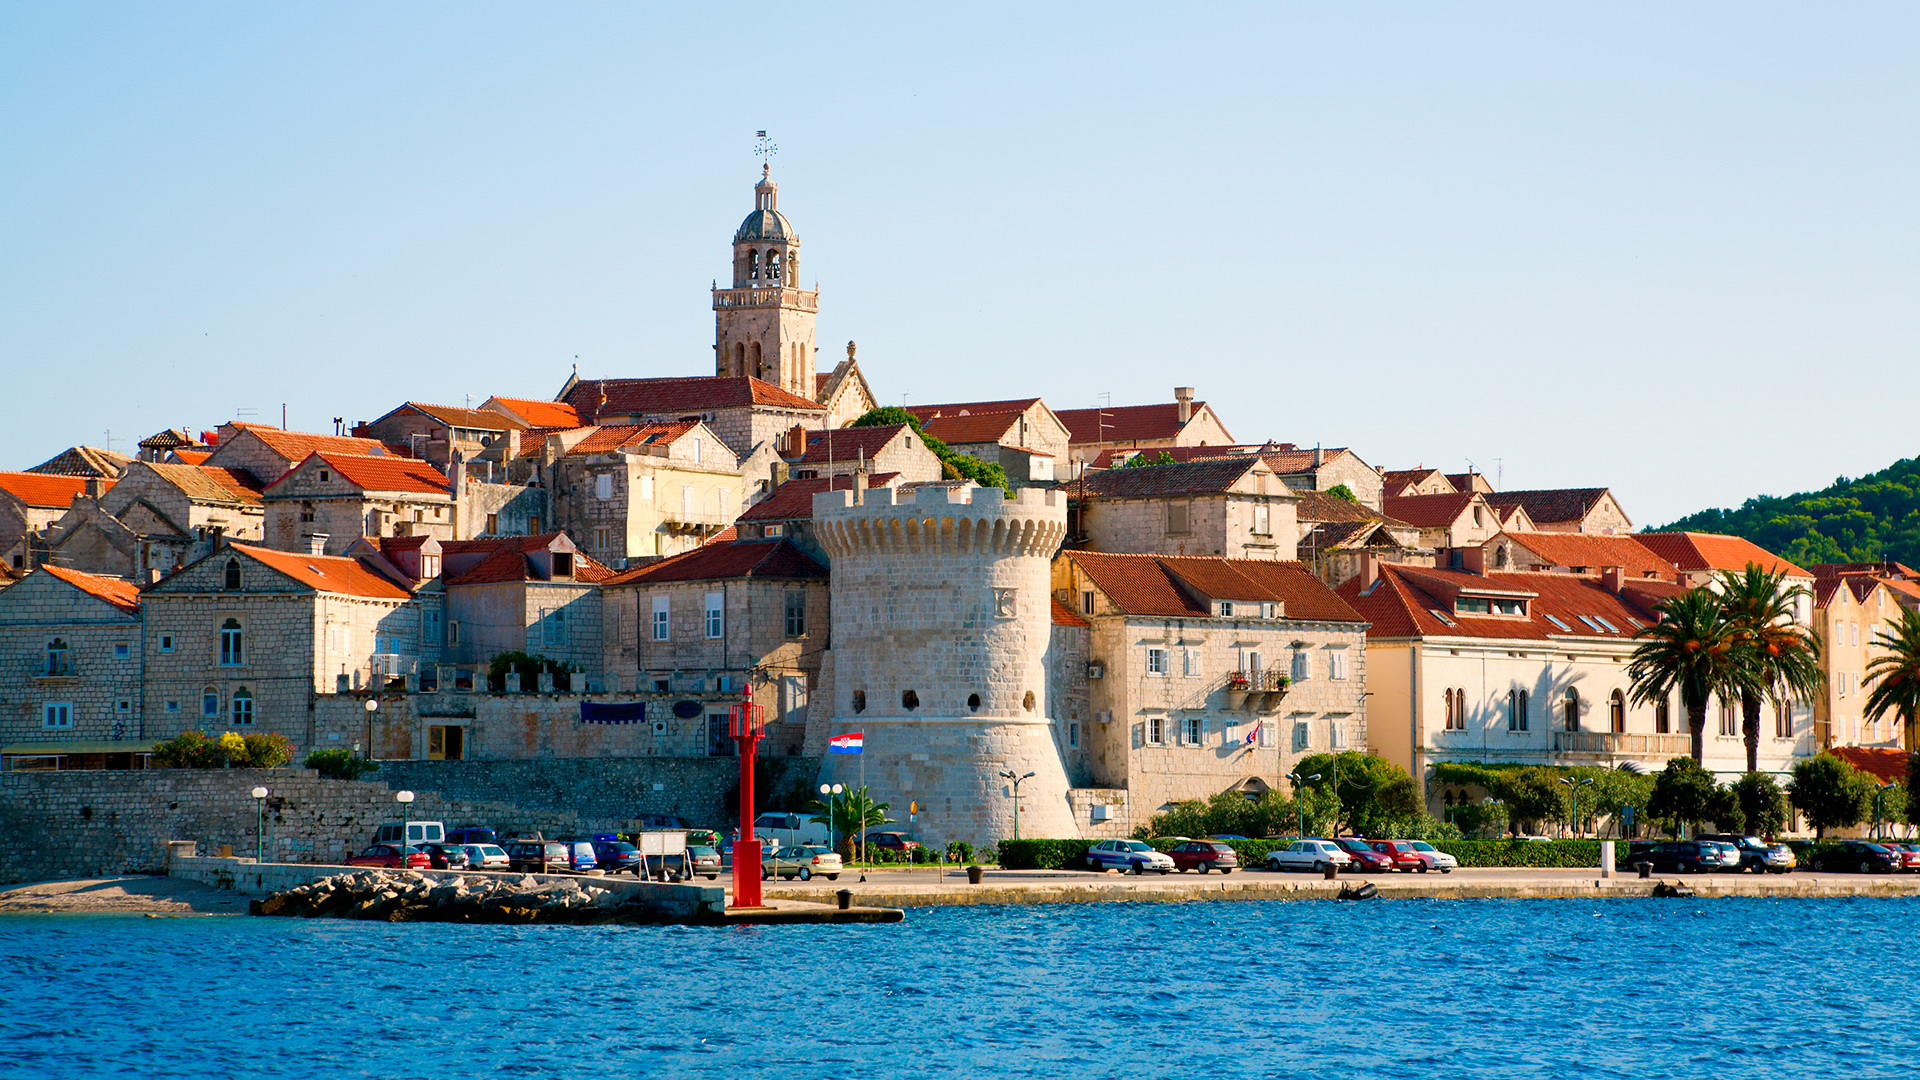 St Mark's Cathedral and the fortified walls, Korčula, Croatia - Croatian waters SimpleSail sailing routes